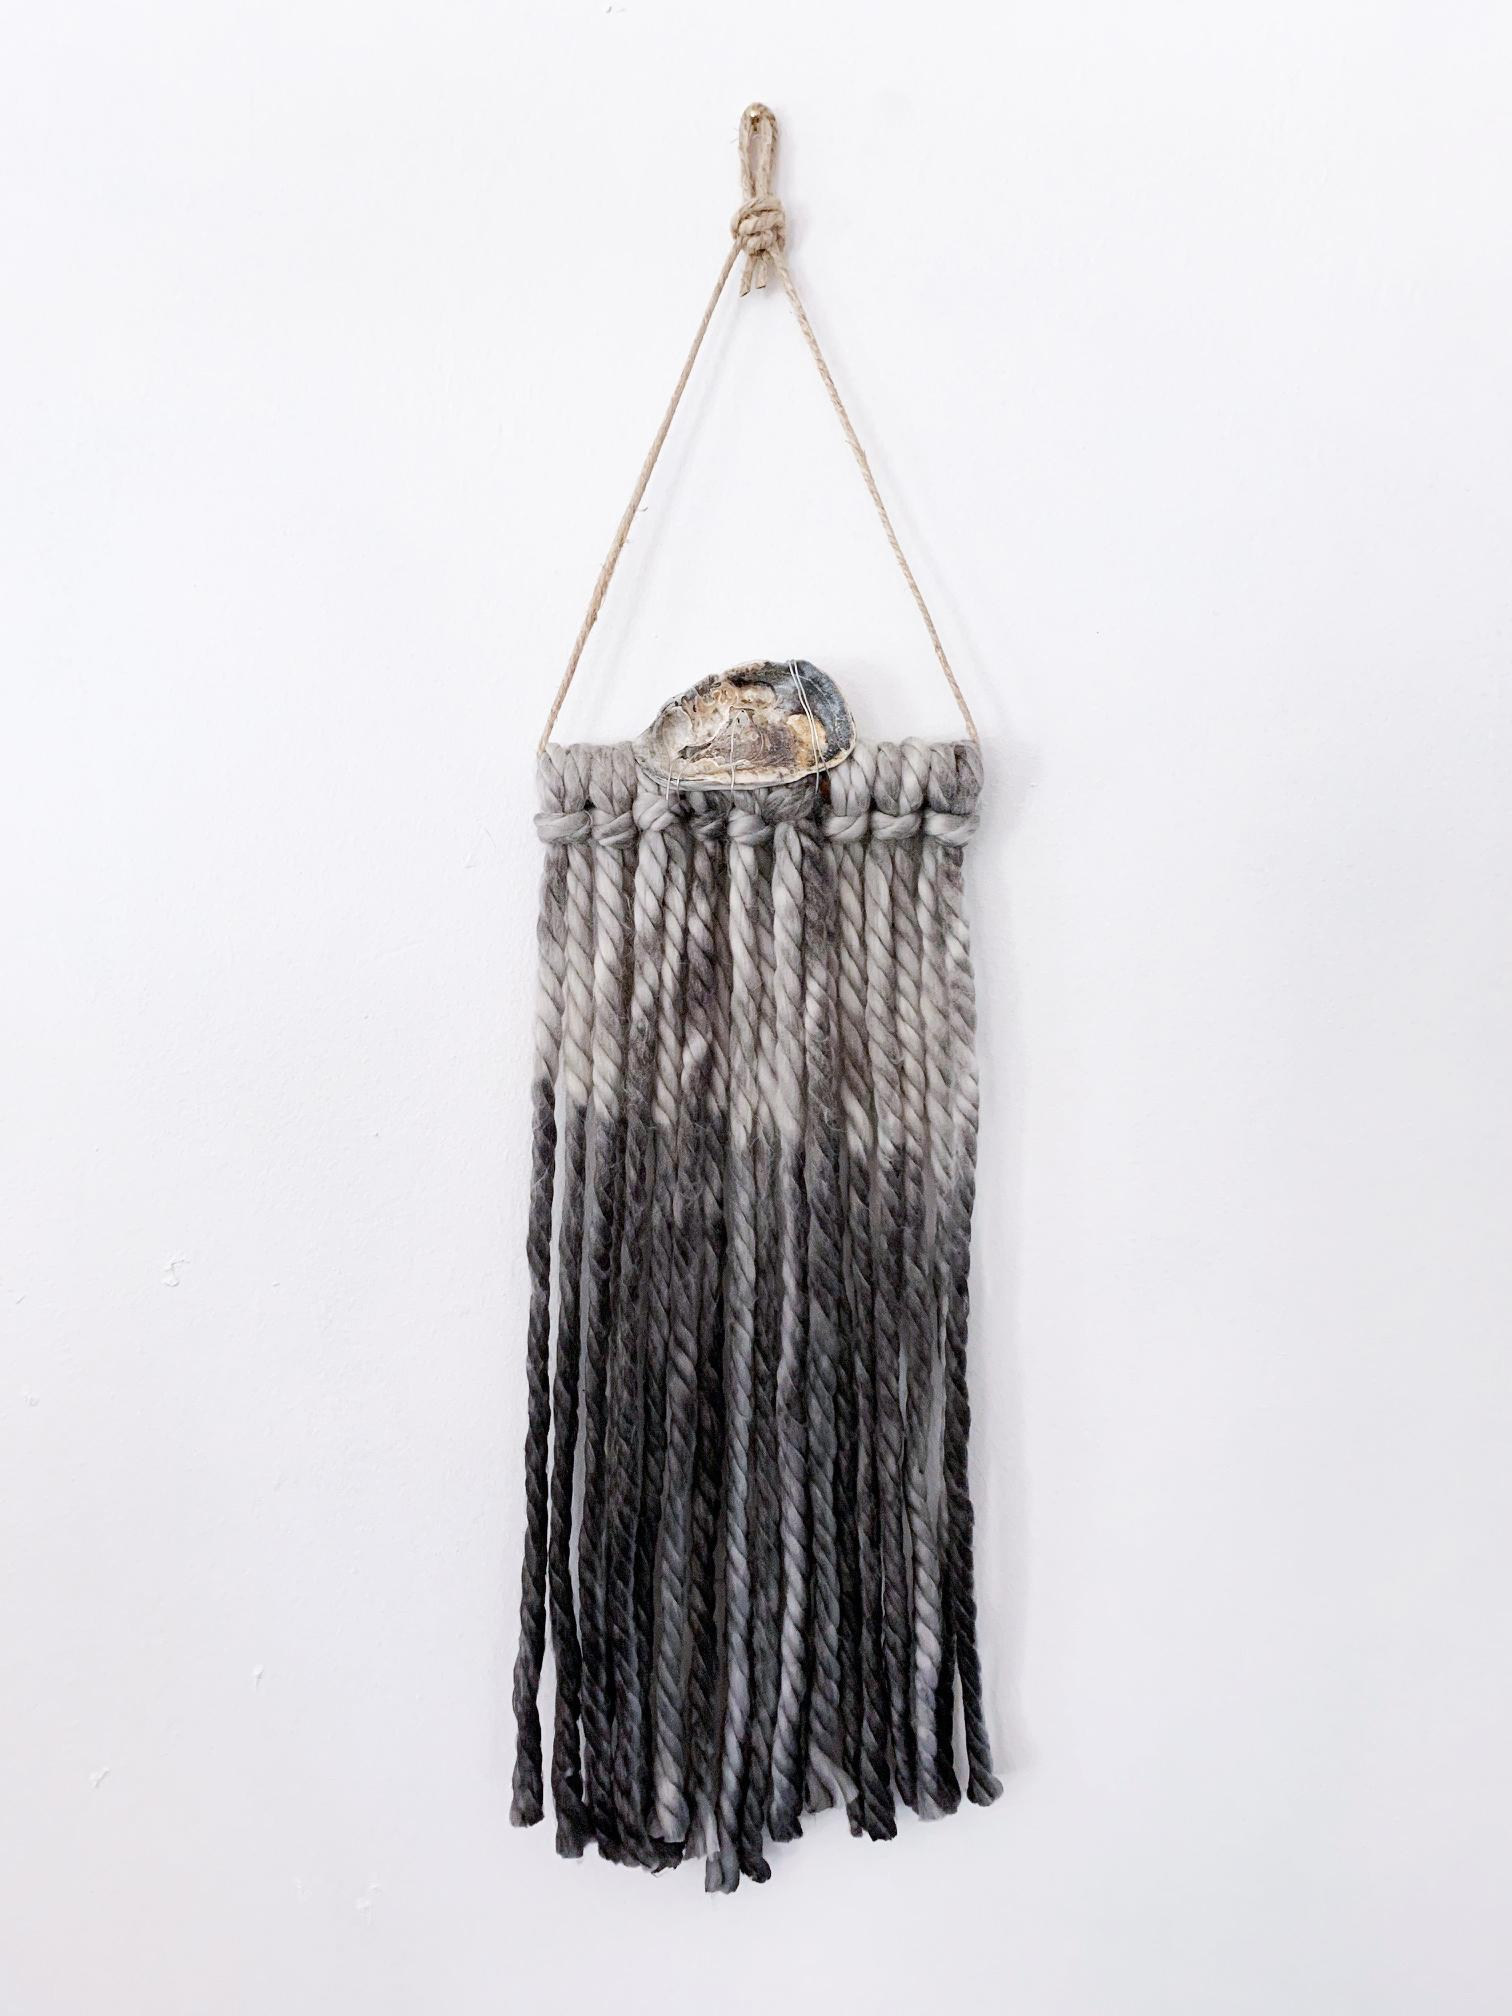 Shadow Dive, 2020, yarn, oyster, wire, copper, jute decorative wall hanging